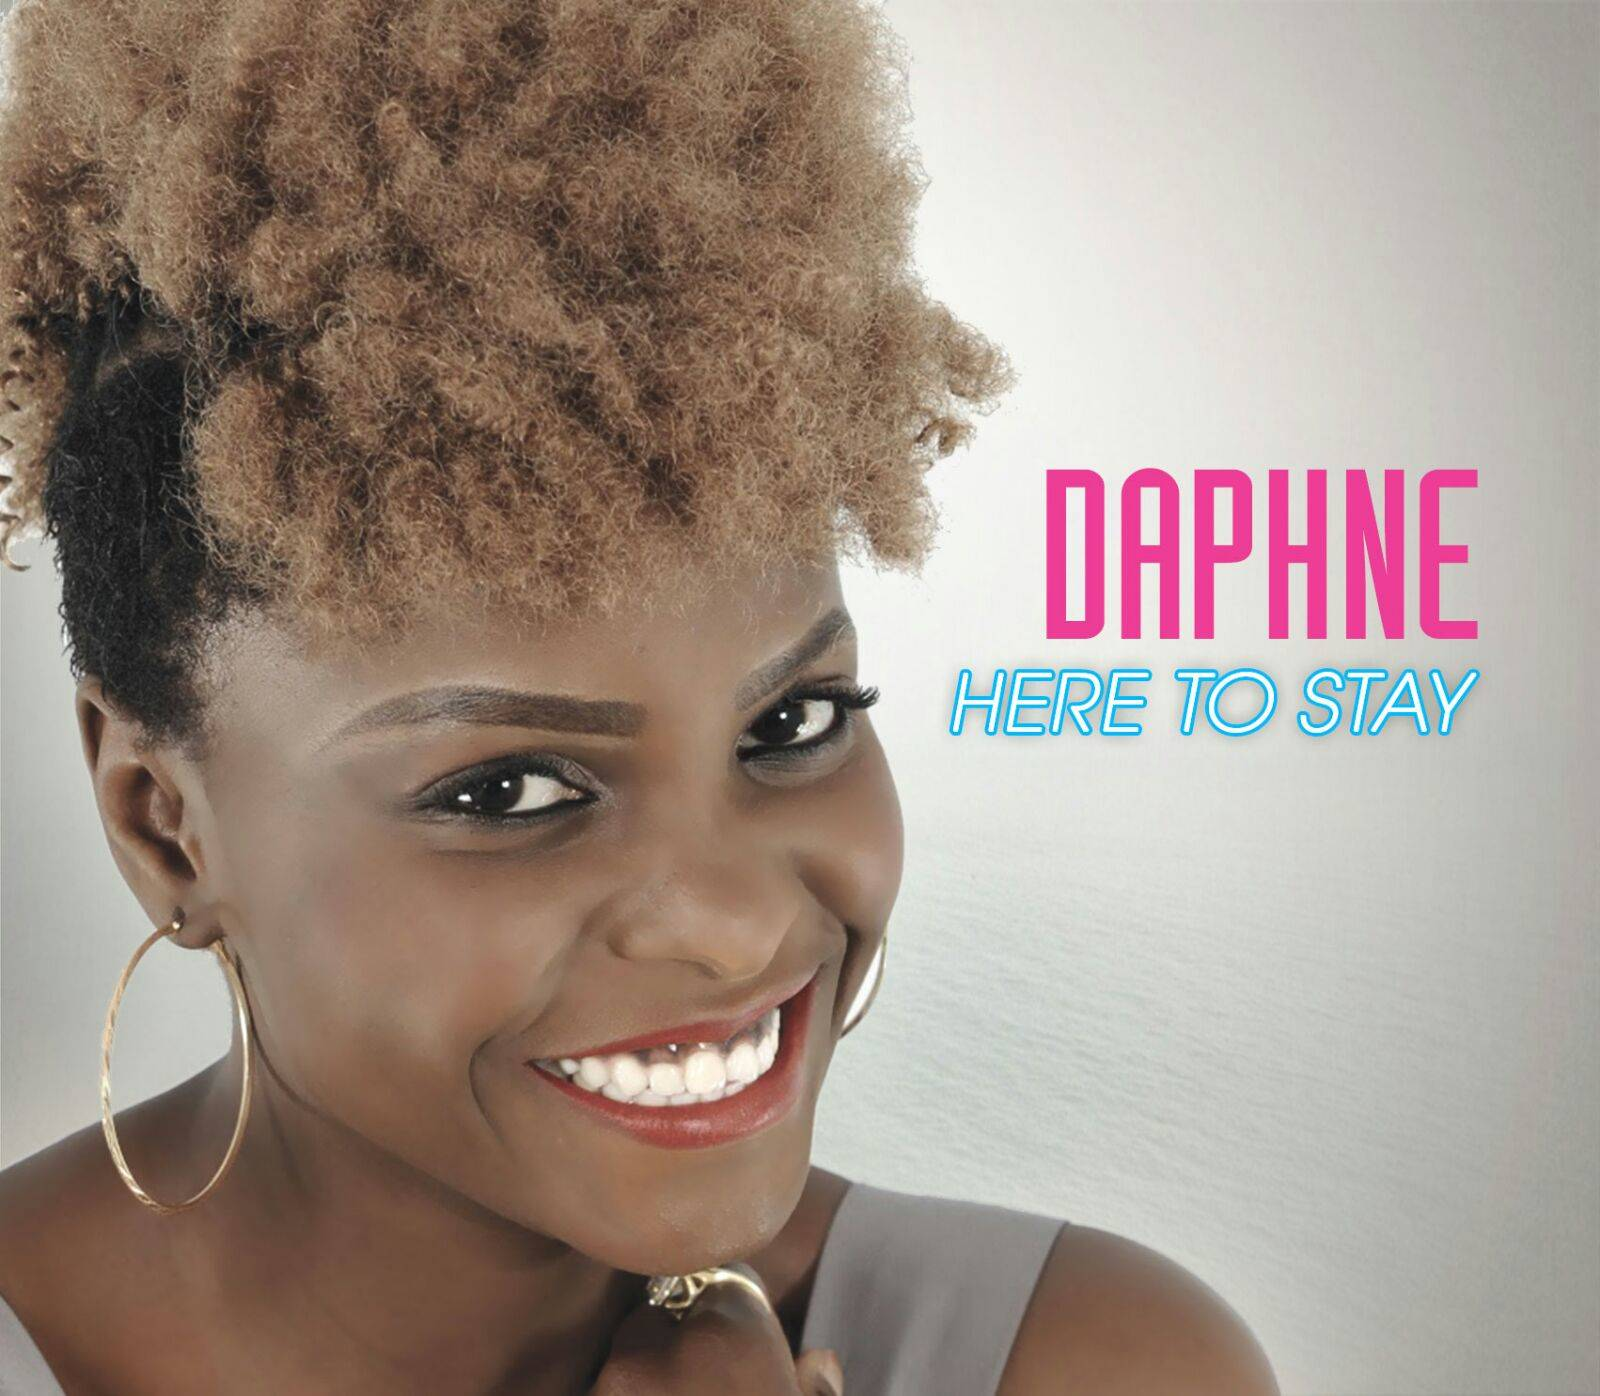 Daphne -_Here_To_Stay tiptopstars www.tiptopstars.com